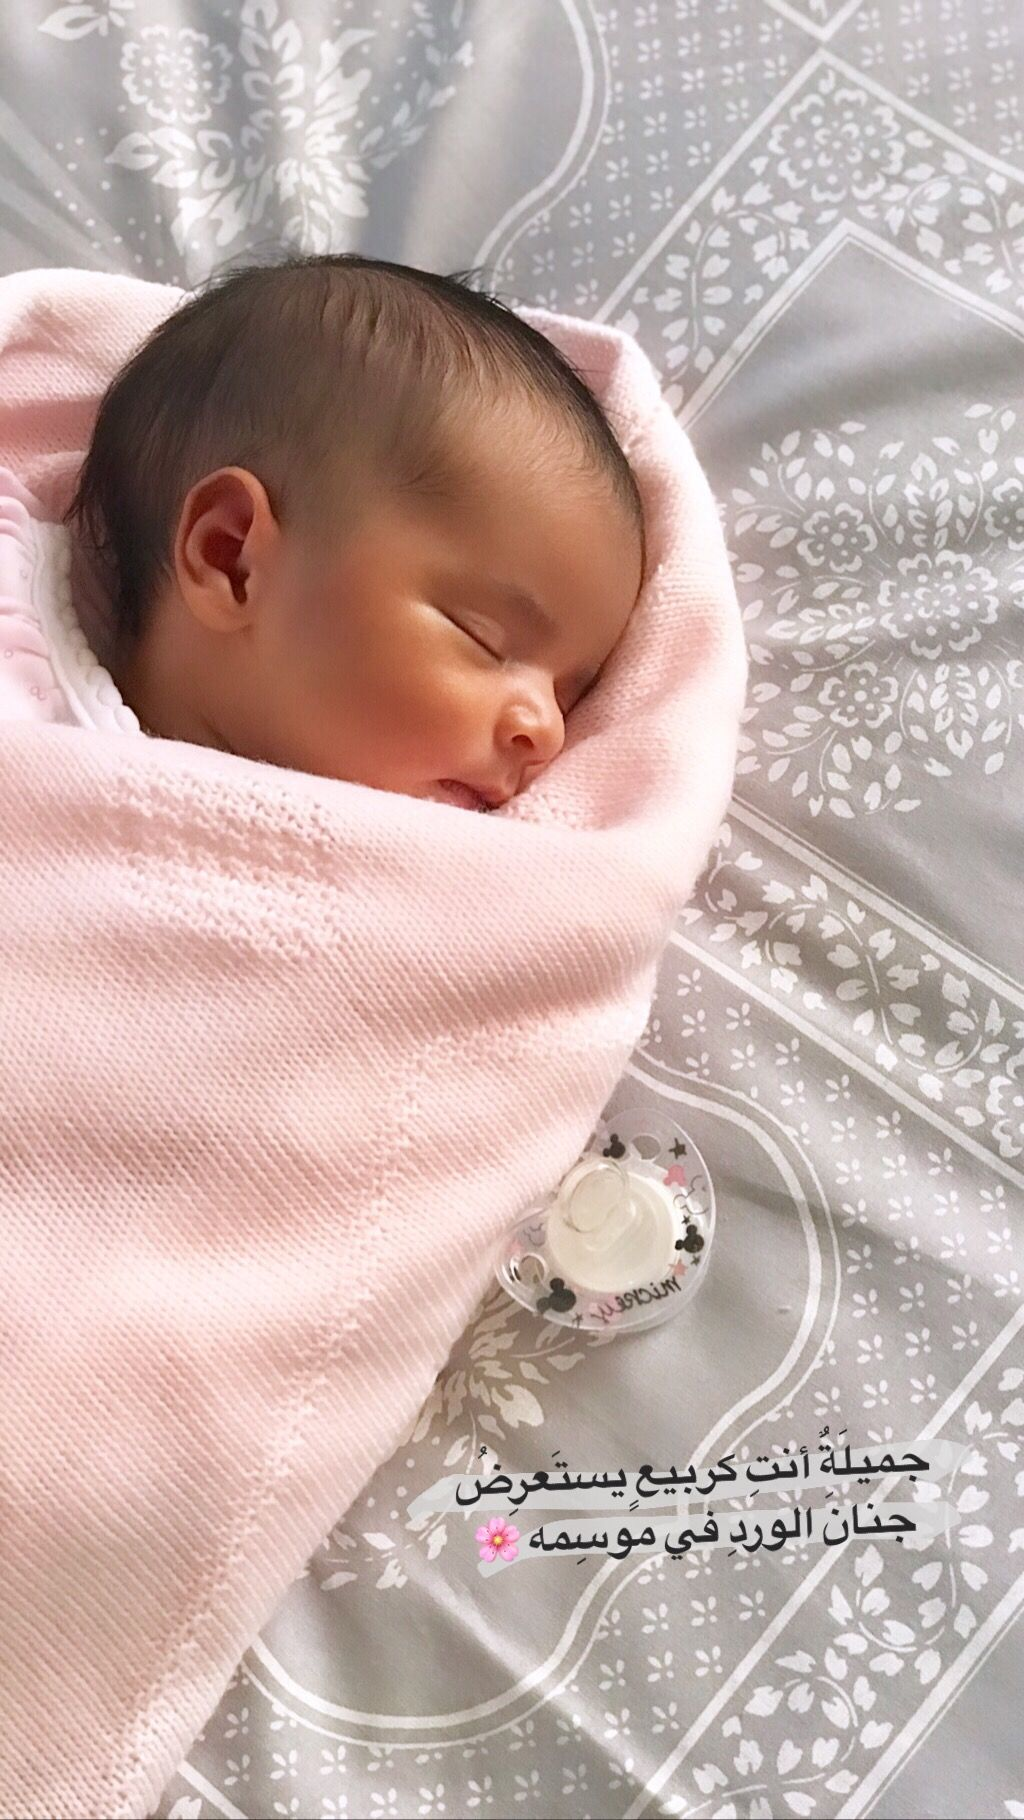 Pin By فاطمة النقبي On All Pictures From My Diary In Snapchat Cute Baby Dolls Cute Baby Videos Baby Art